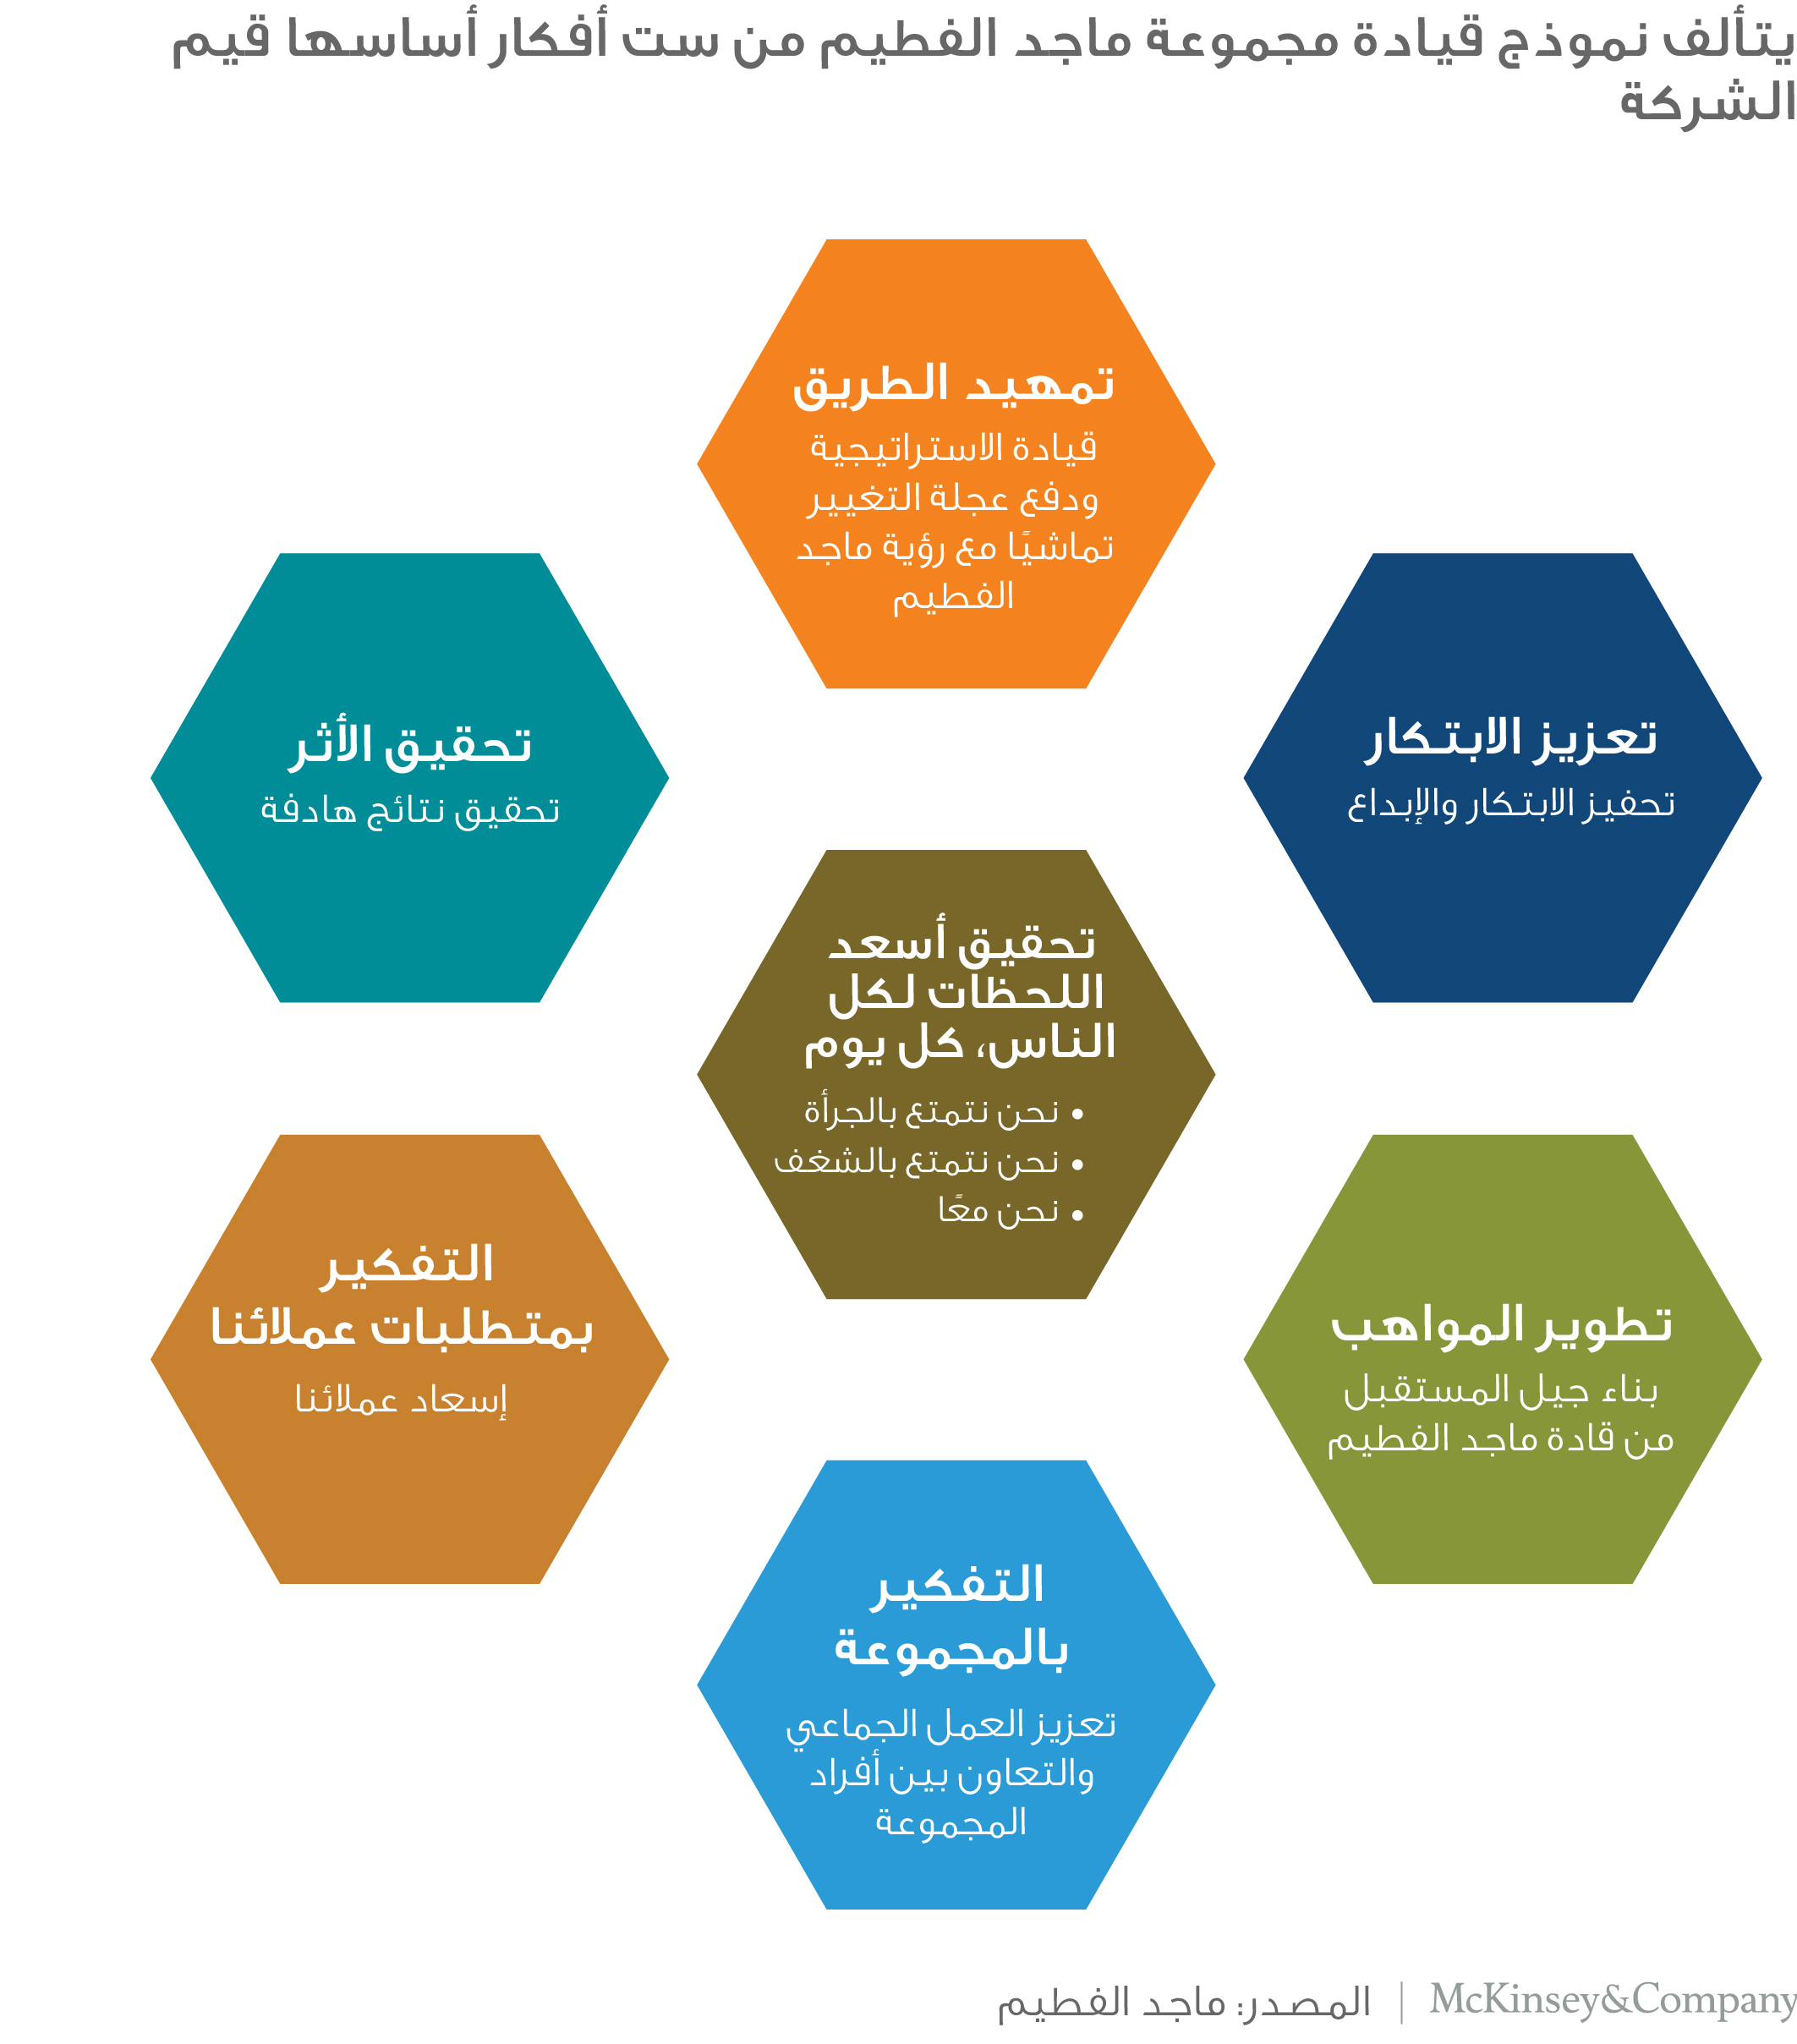 The Majid Al Futtaim leadership model comprises six themes, with the company's values at the core.